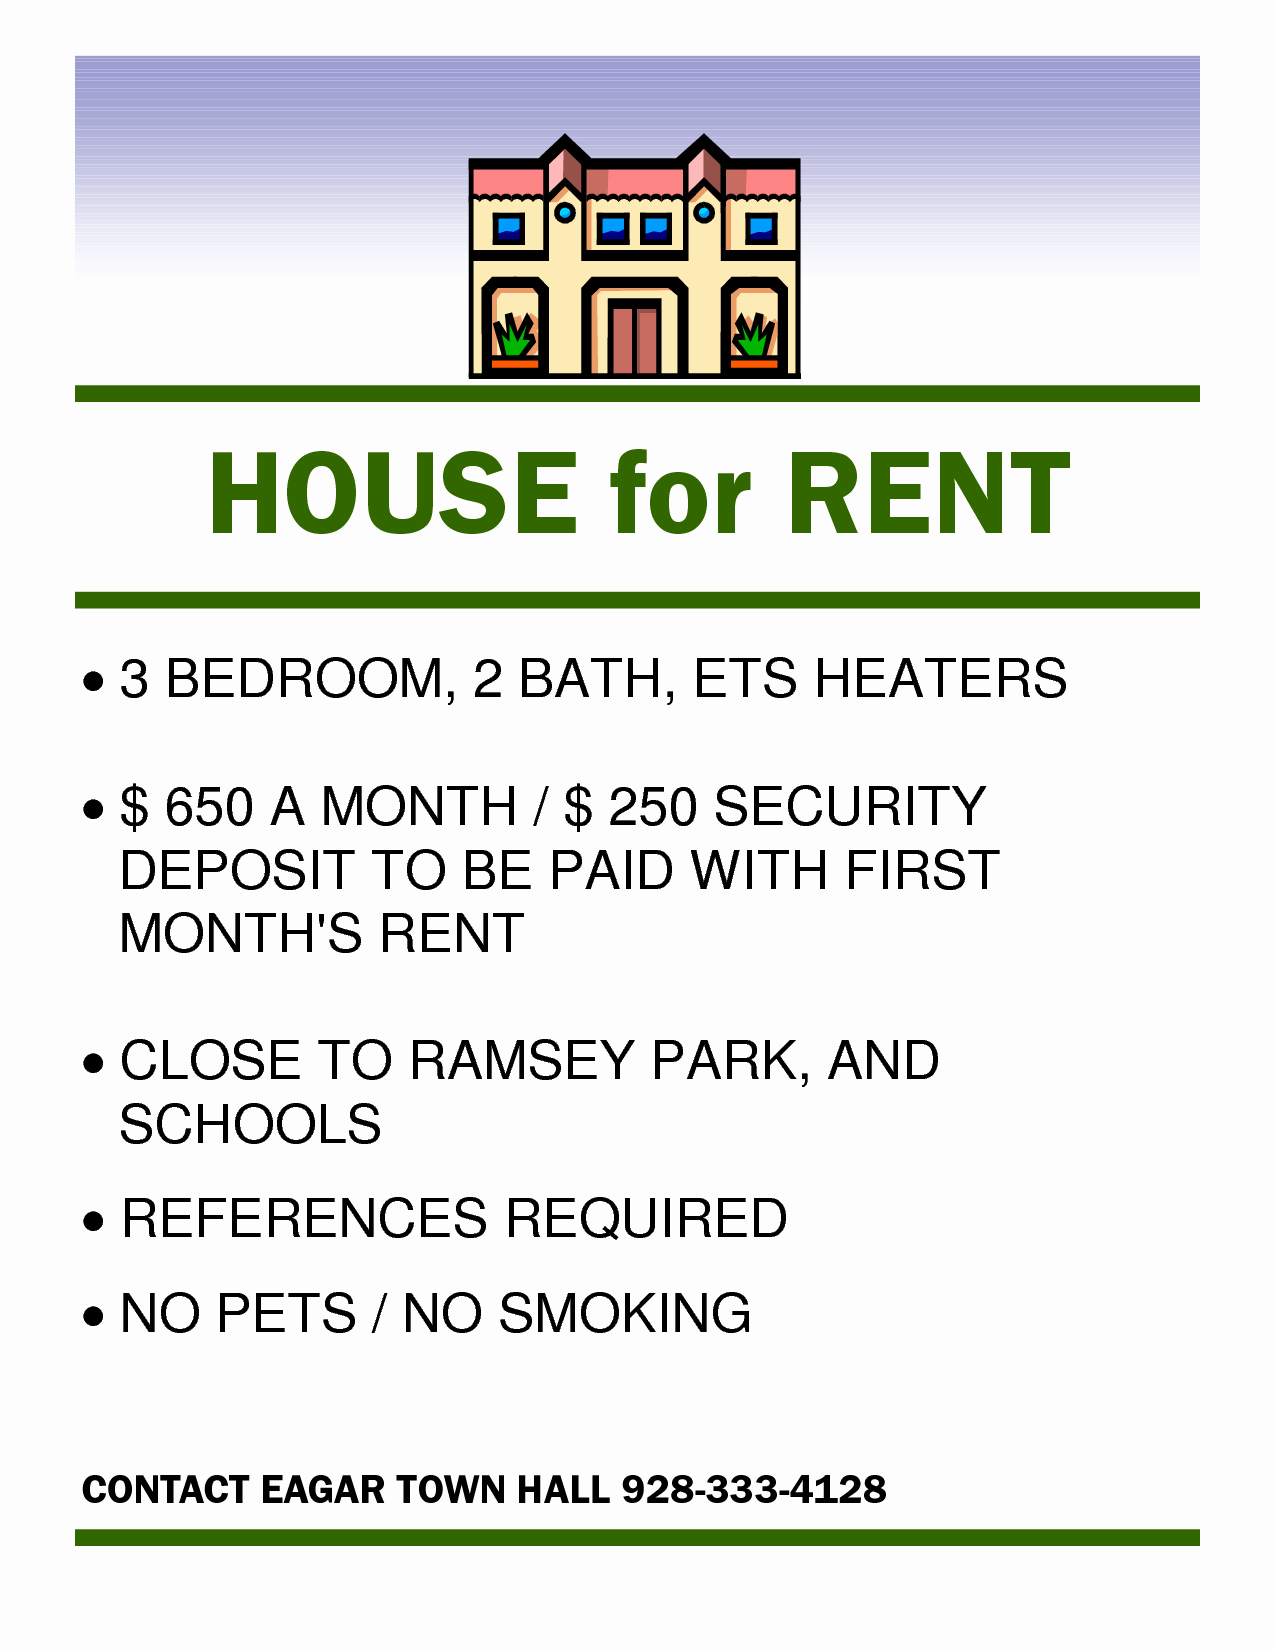 9 Home for Rent Flyer Free Psd Free Real Estate